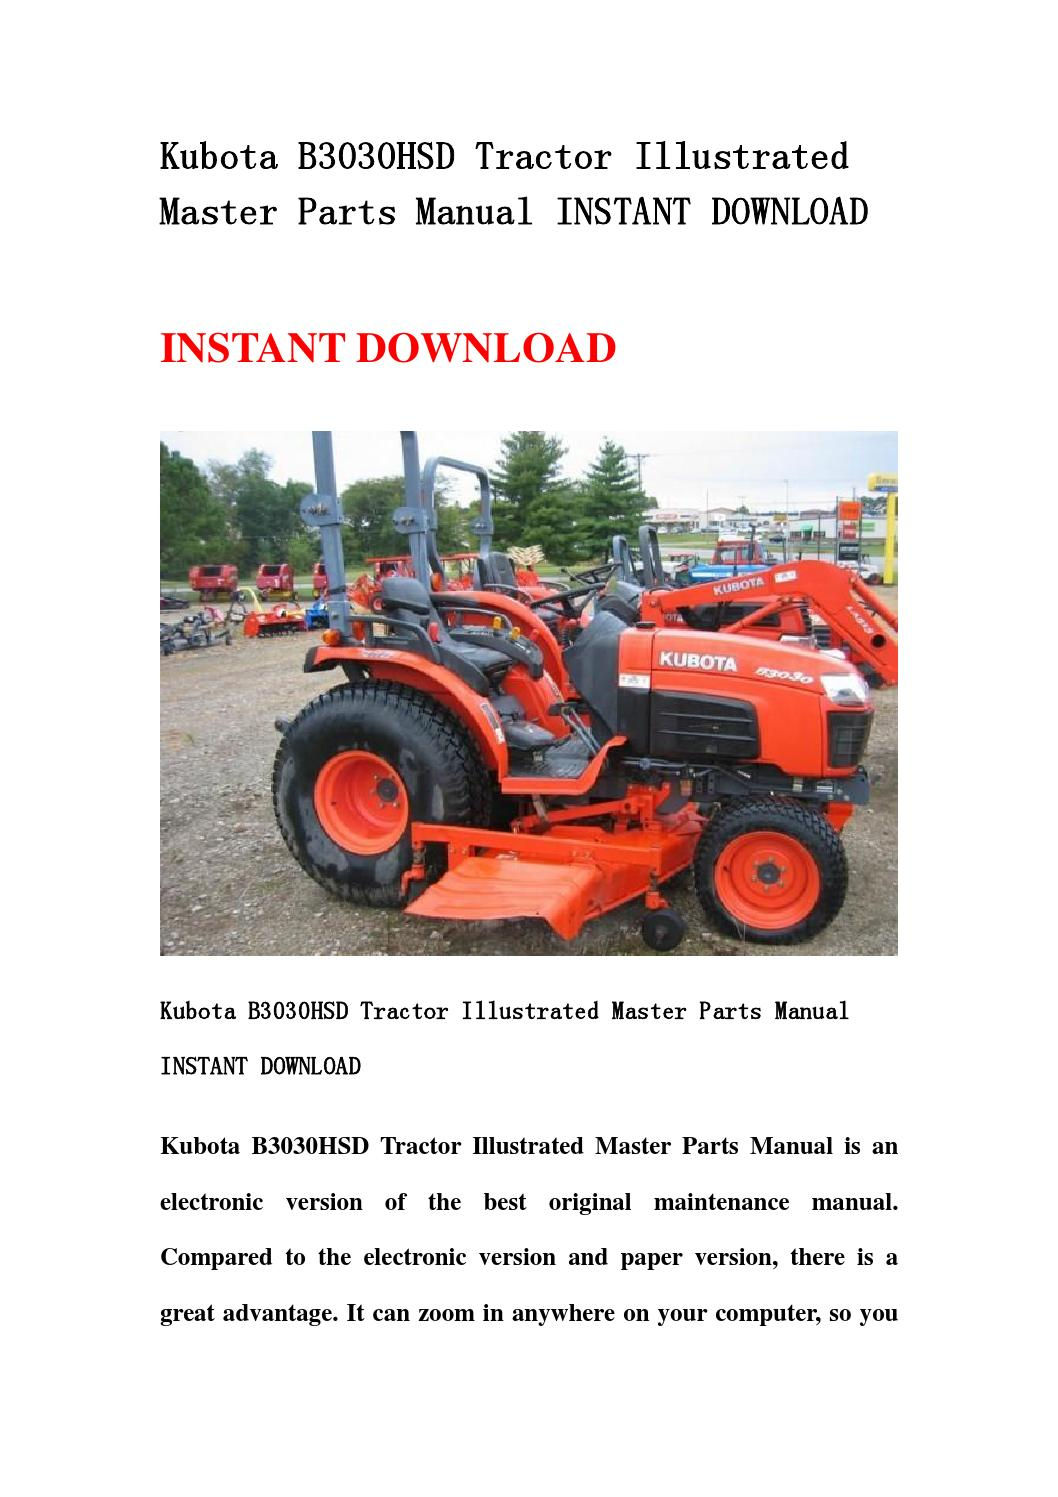 hight resolution of perfect condition ls g compact with factory loader backhoe pages special order catalogs welcome site searching bx22d then ideal service repair b series f